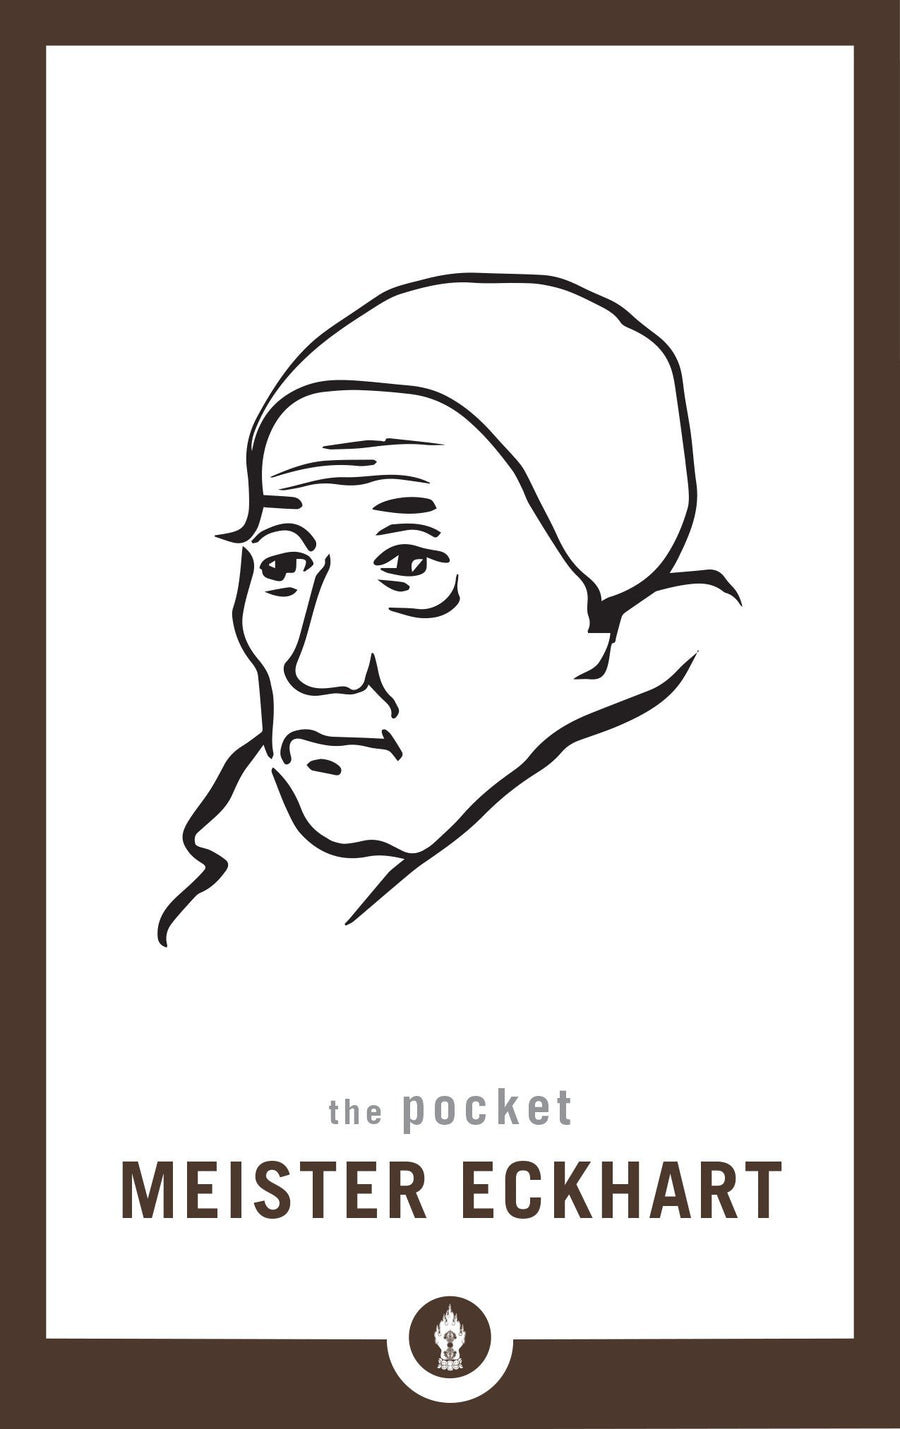 Pocket Meister Eckhart